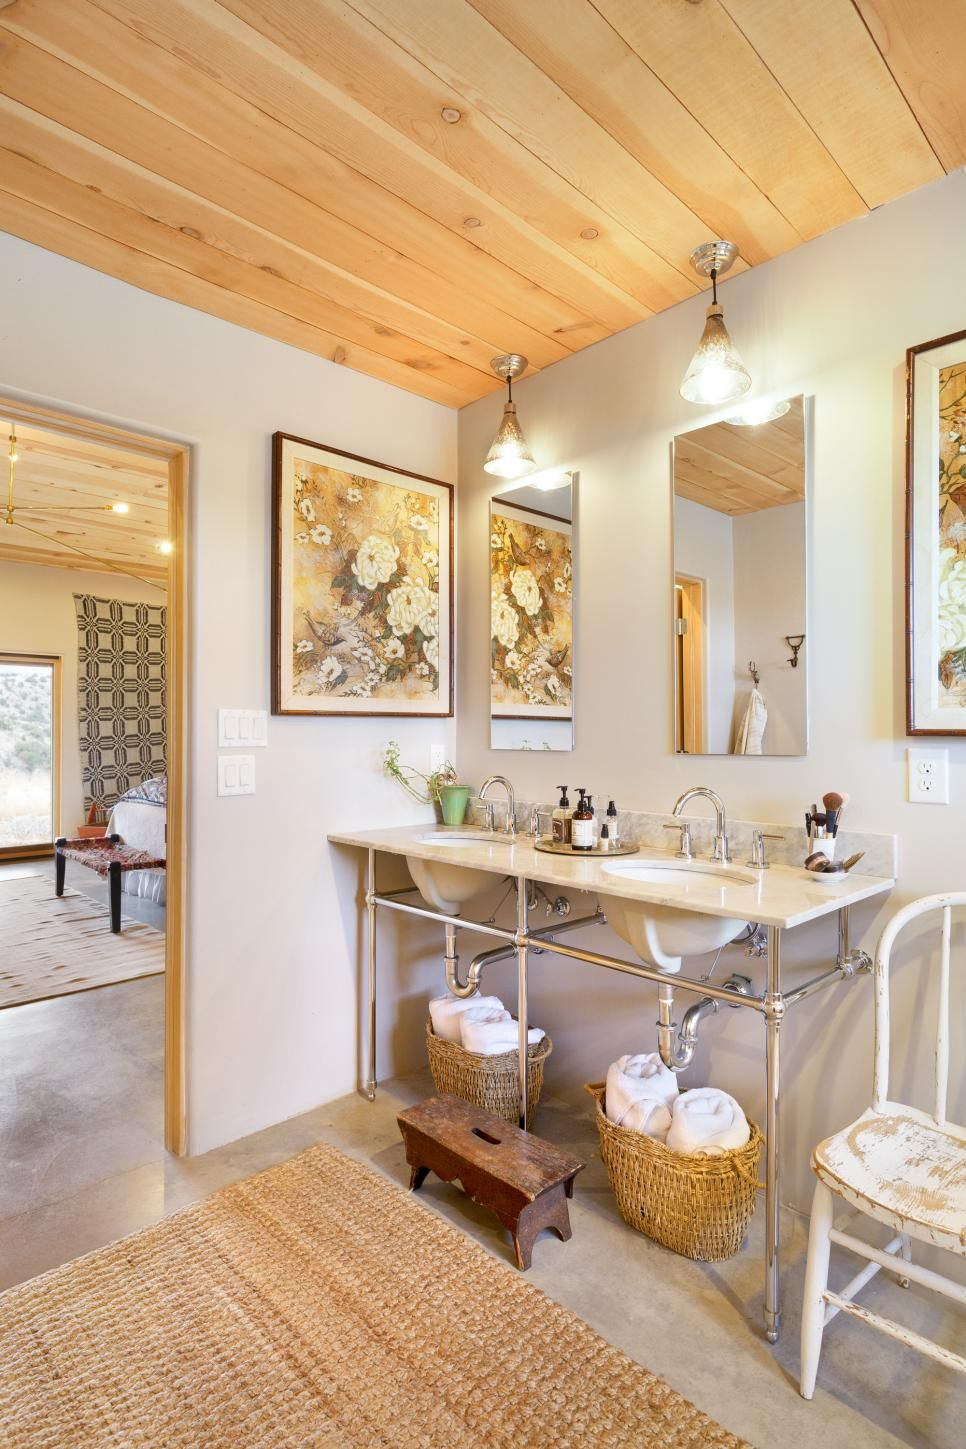 This neutral master bathroom features a double sink vanity with